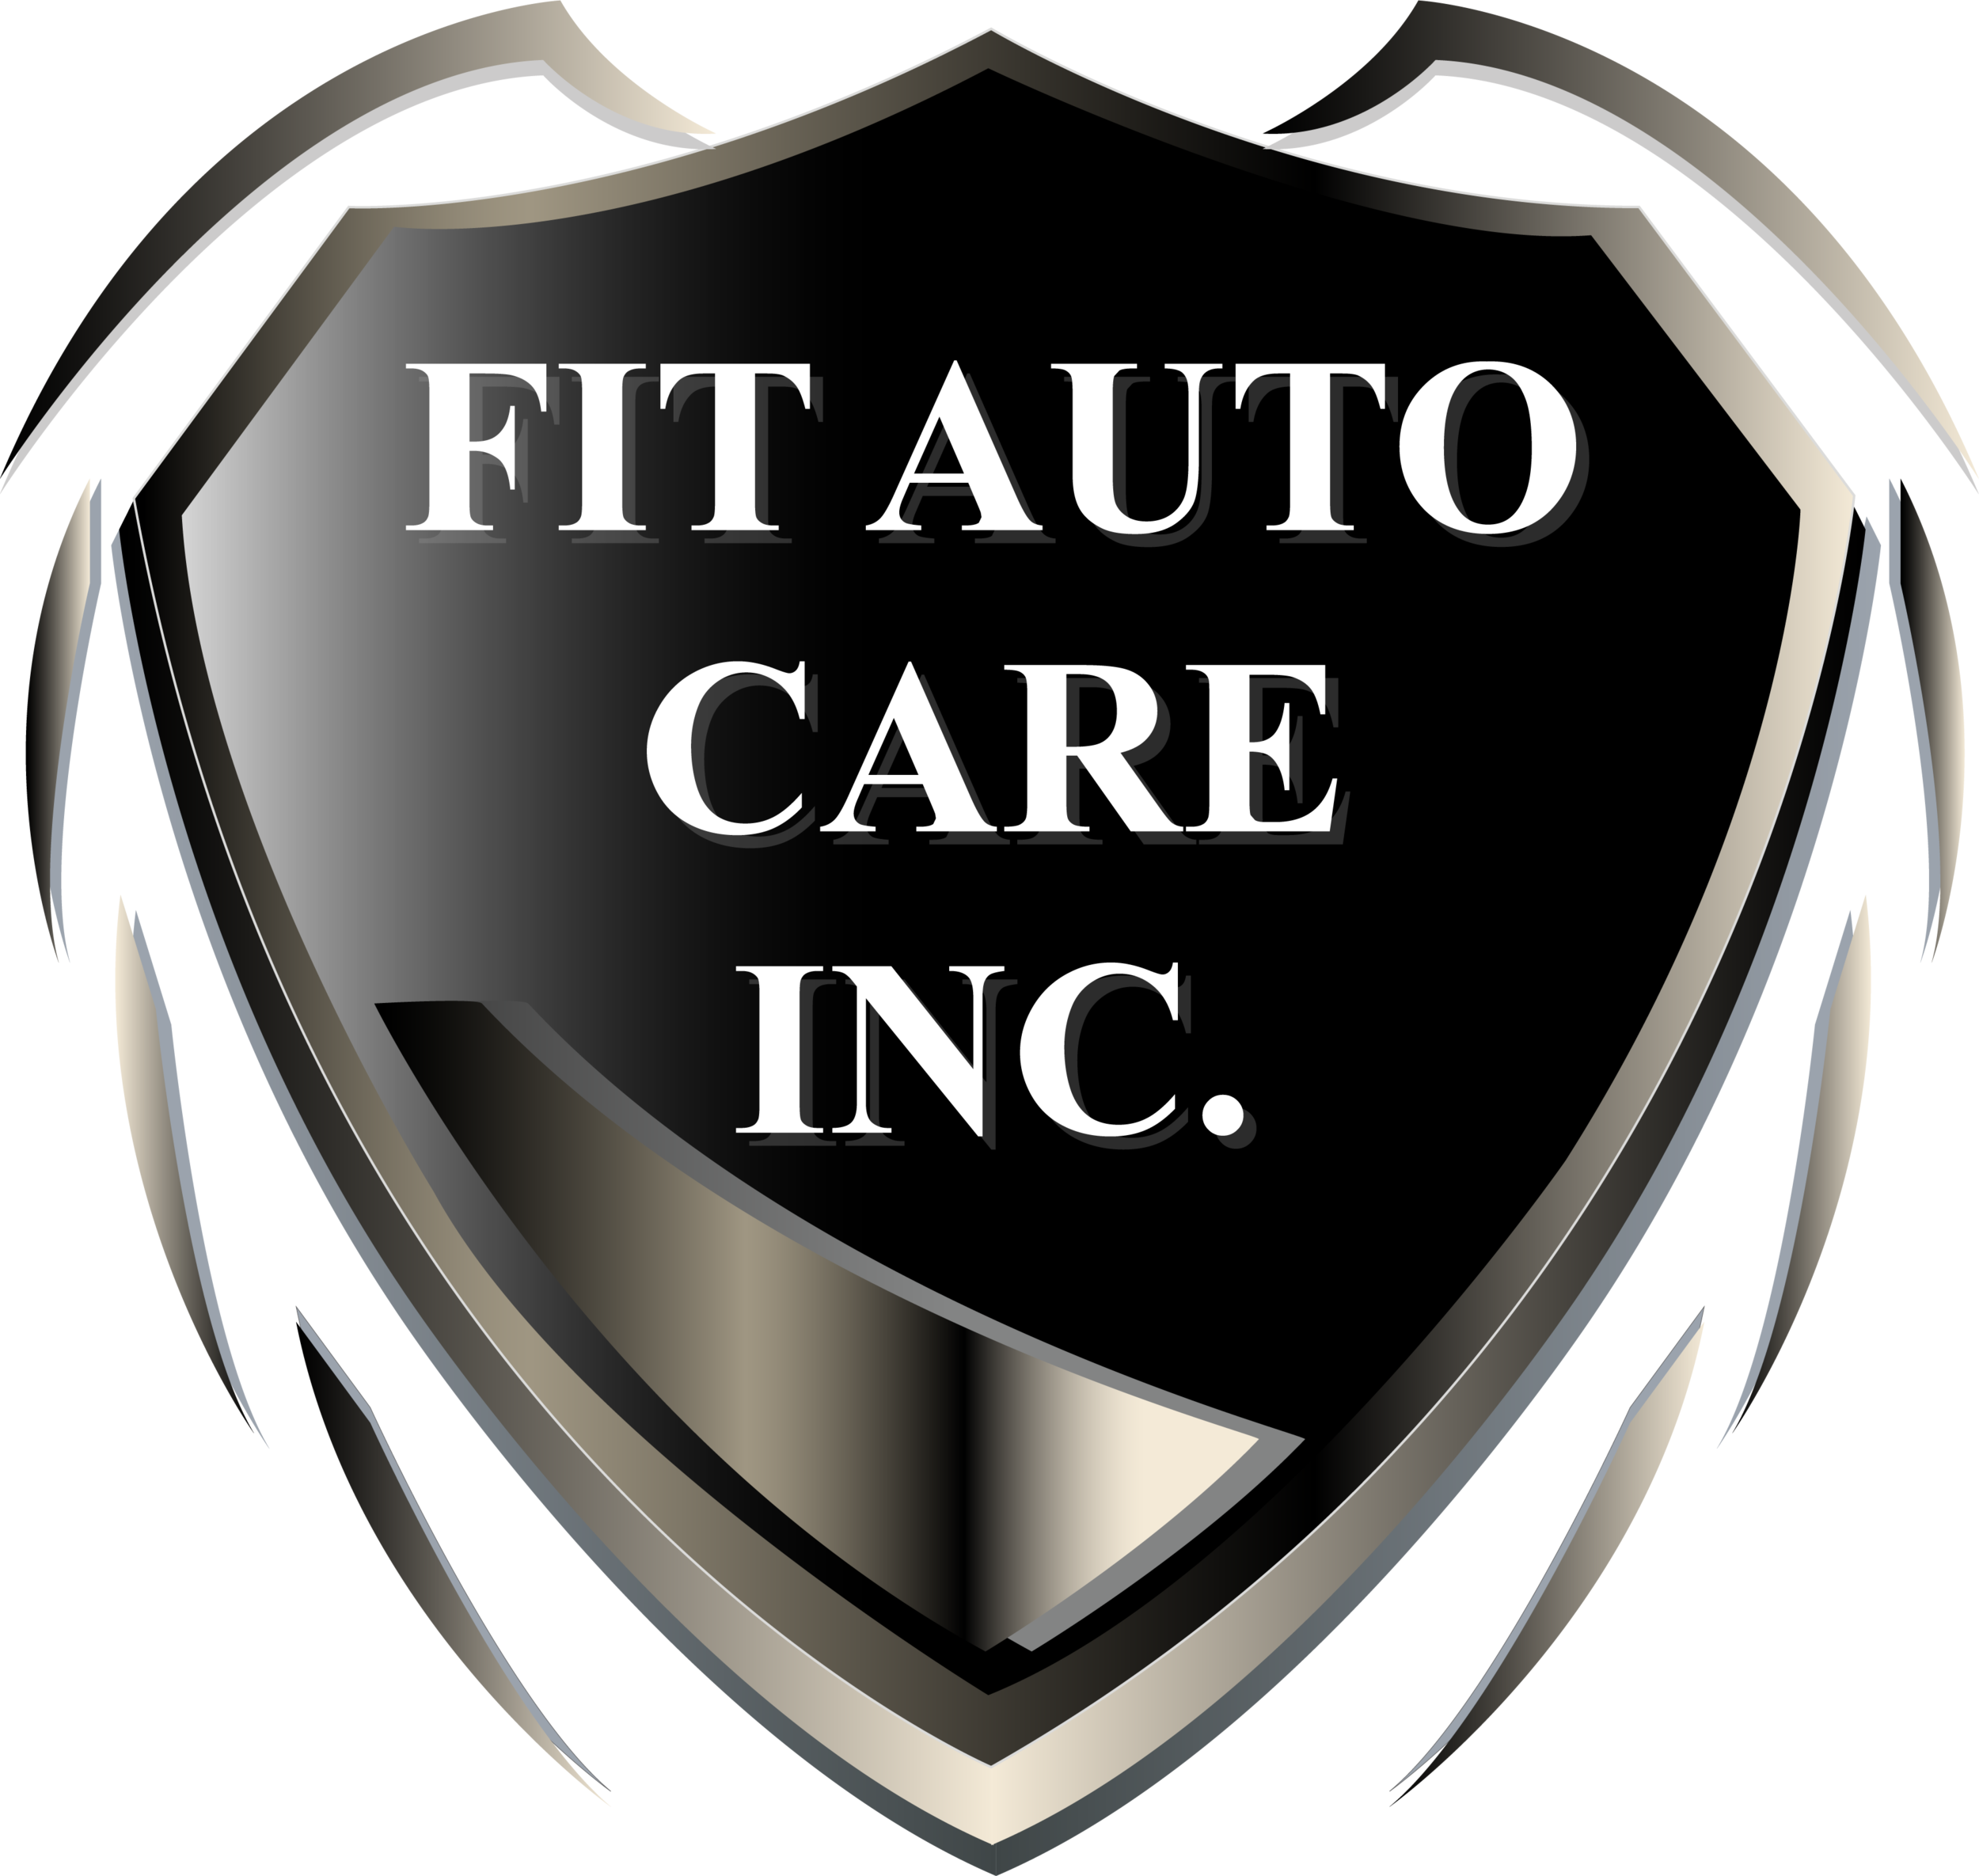 fit auto care - Full service car care facility located in Markham, Ontario. Owner Rafi is a true go getter sourcing new clients from near and far!Providing his company with beautiful images and videography to show his prospects was very important. These now clearly convey the quality services he offers for discerning car owners.Ground up web build, branding, all imaging & videos.www.fitautocare.com